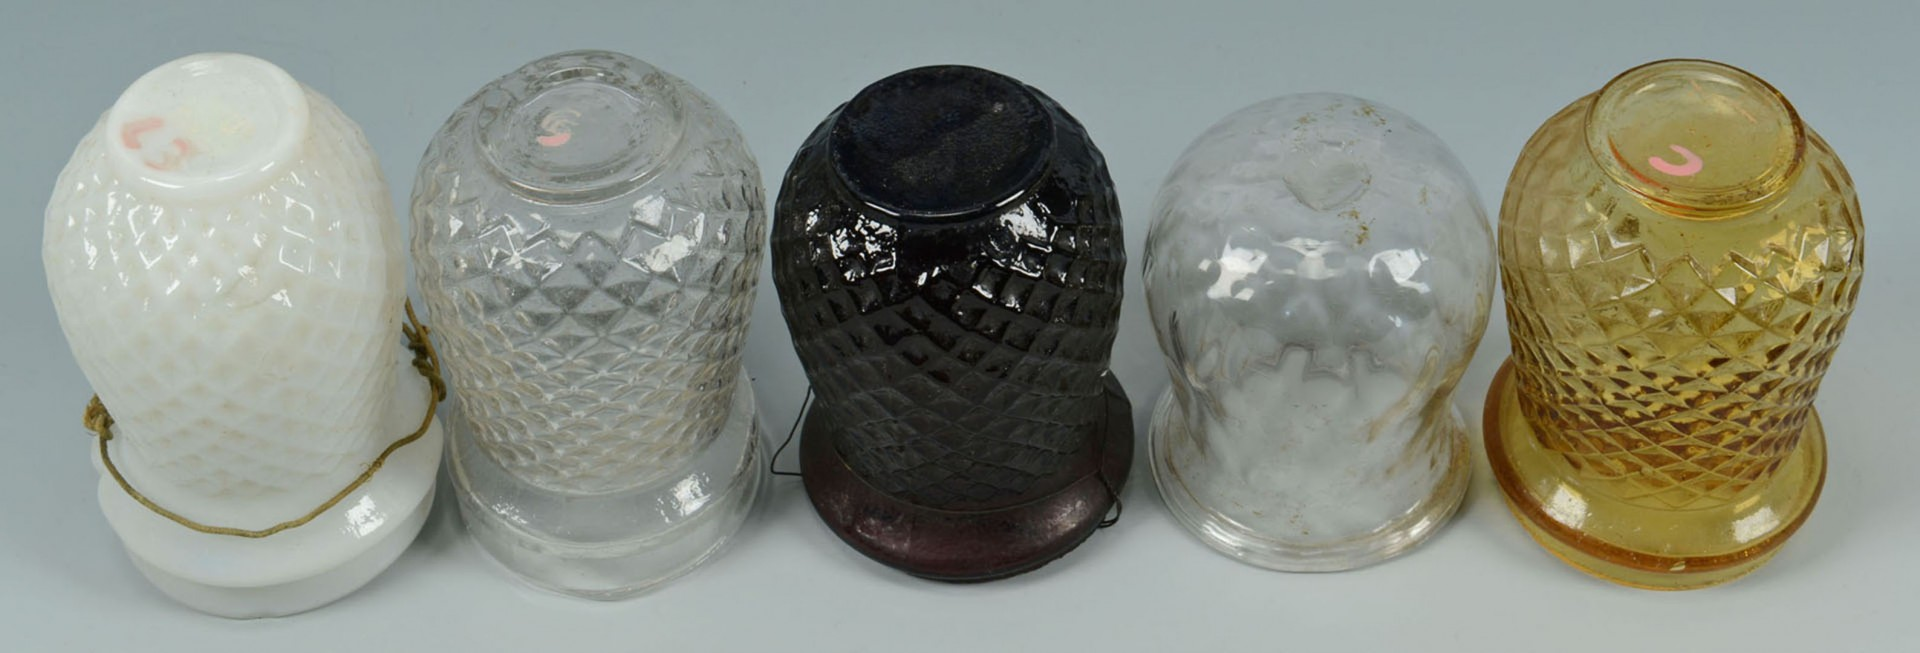 Lot 2872310: 20 Early Glass Christmas Candle Lights or Lanterns